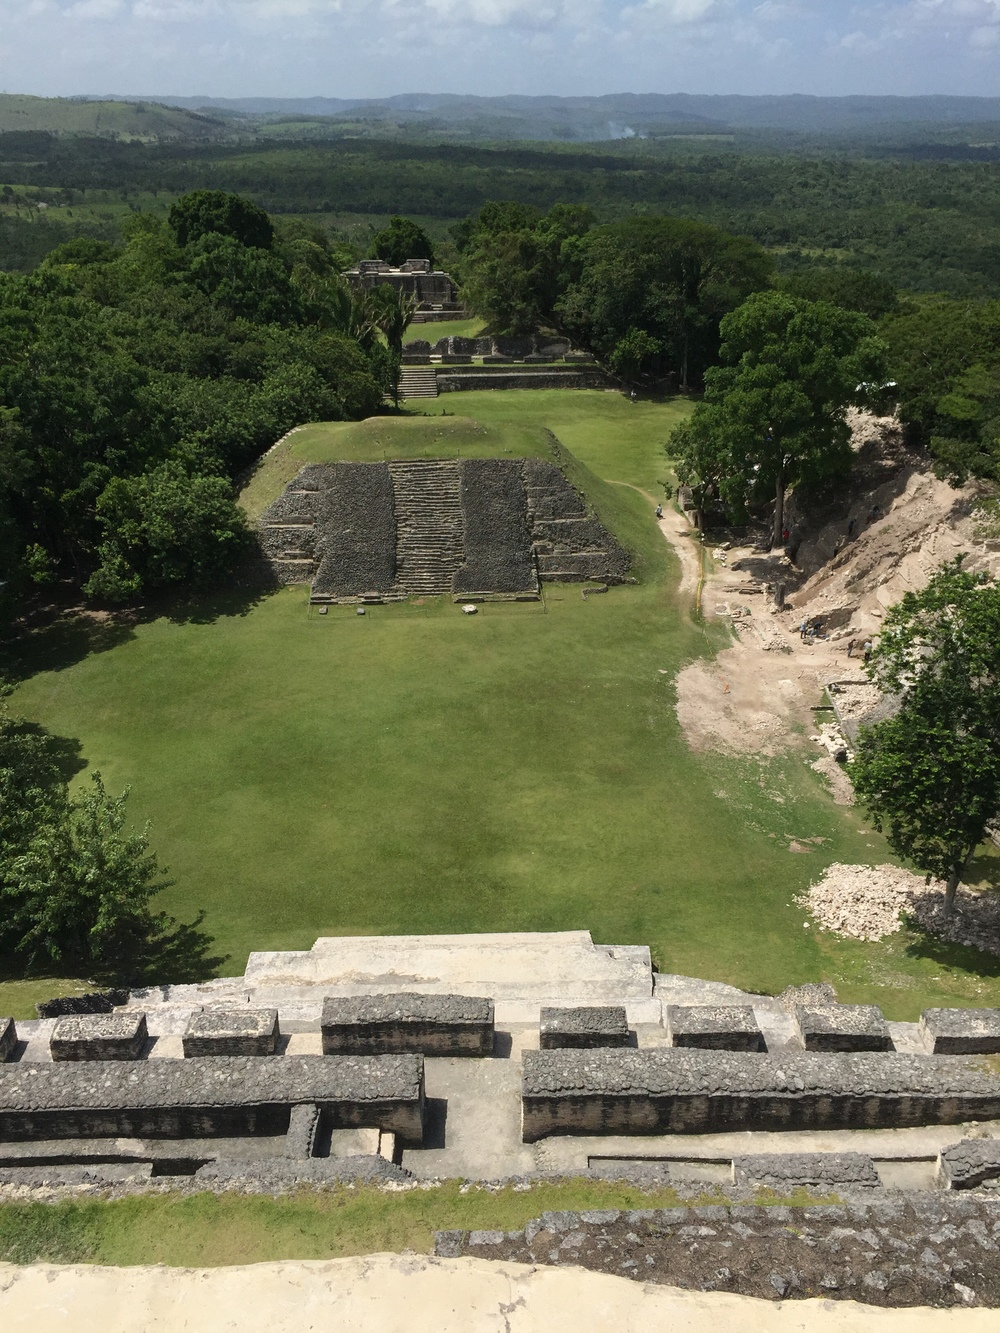 The view from atop El Castillo at Xunantunich.